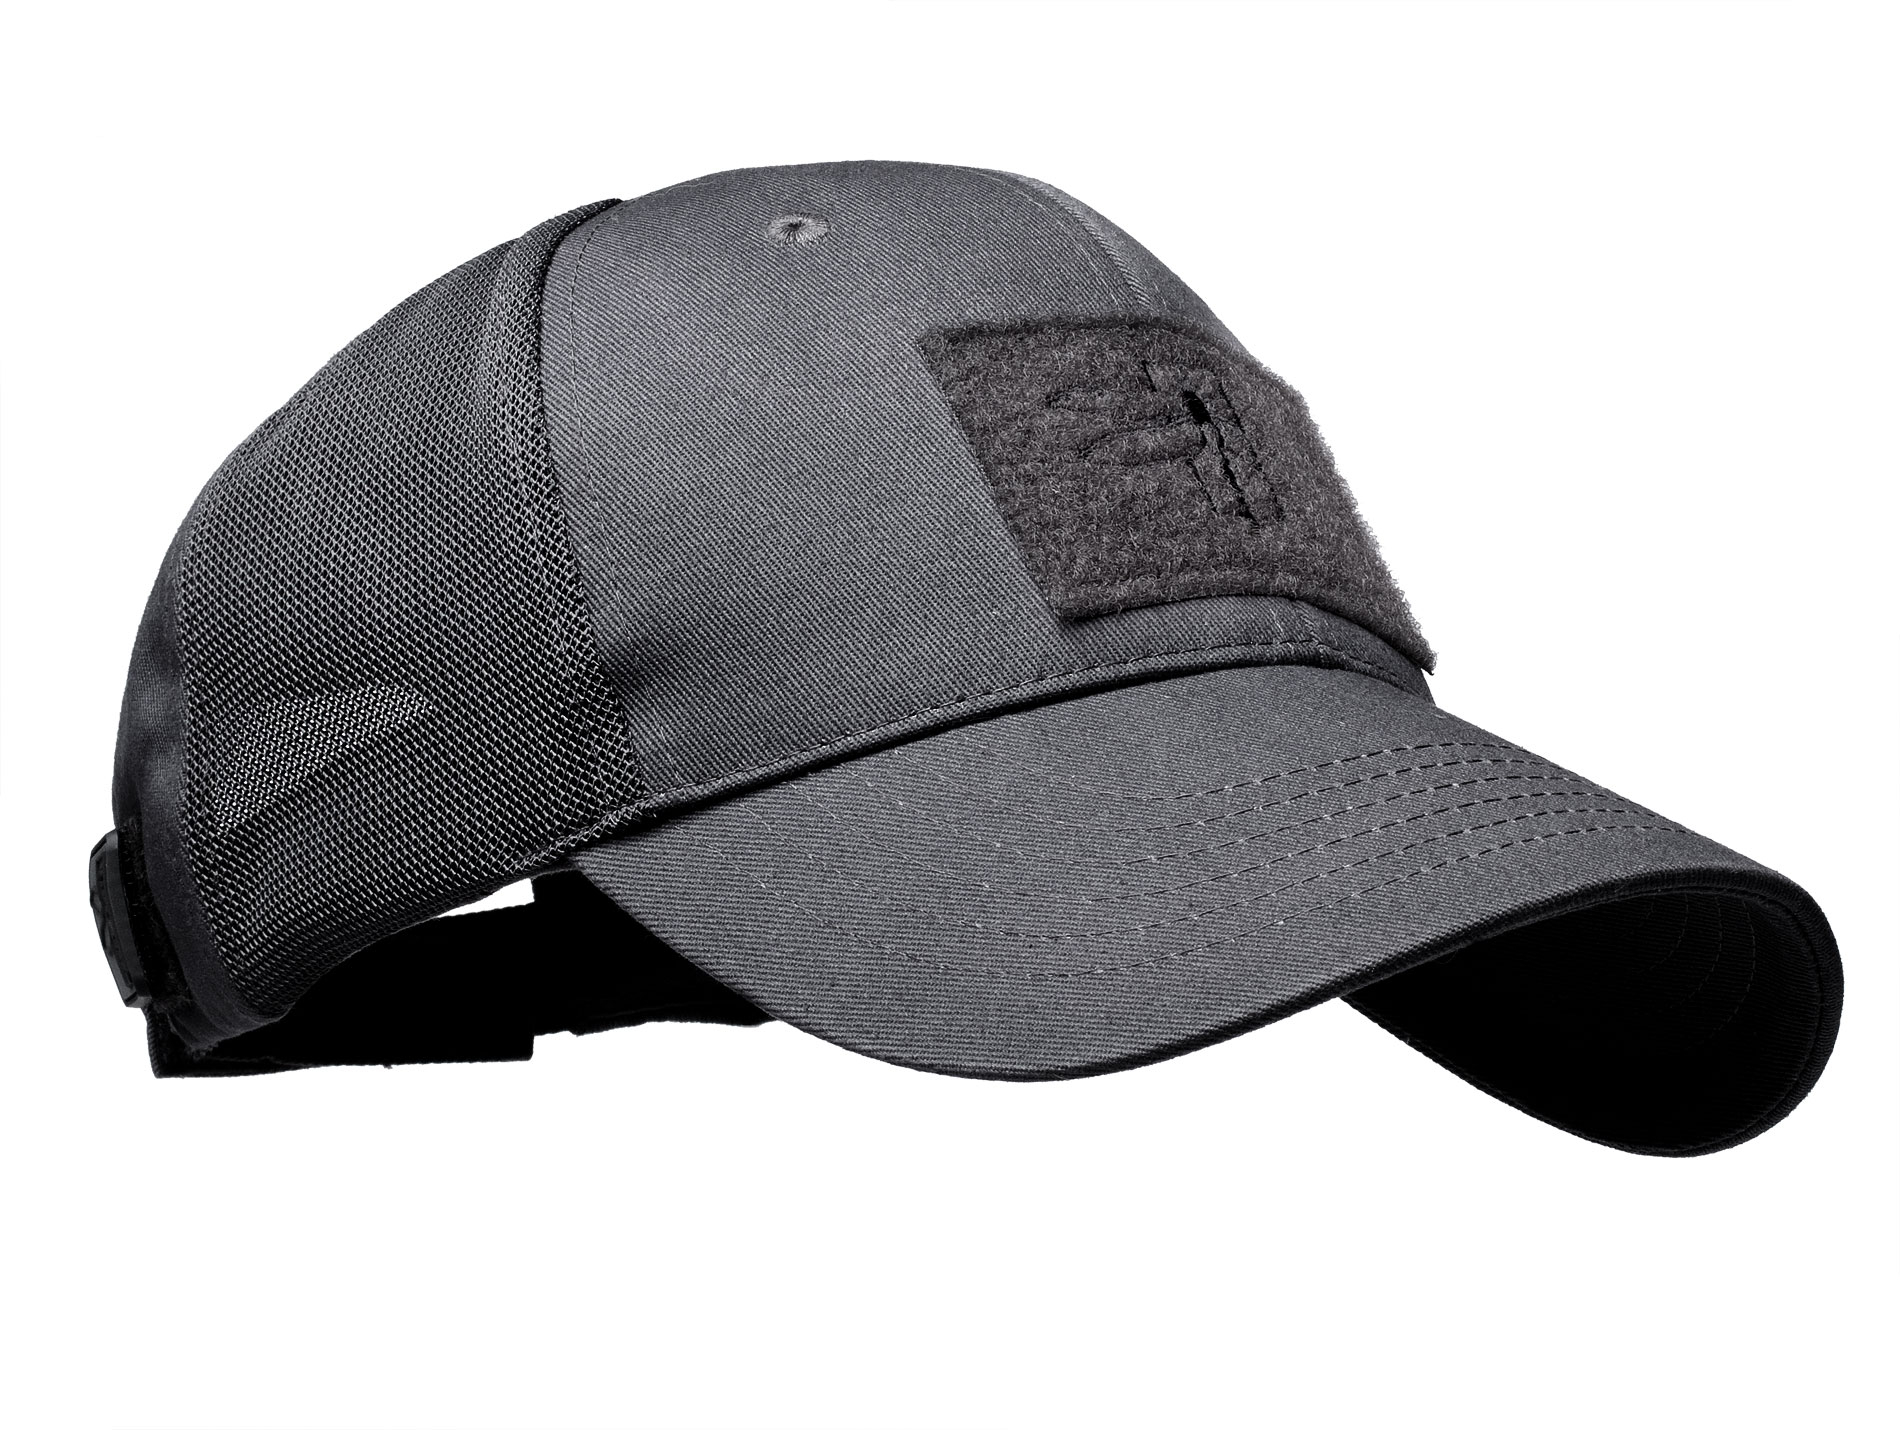 Haley Strategic Troubleshooter Cap Disruptive Grey with Patch